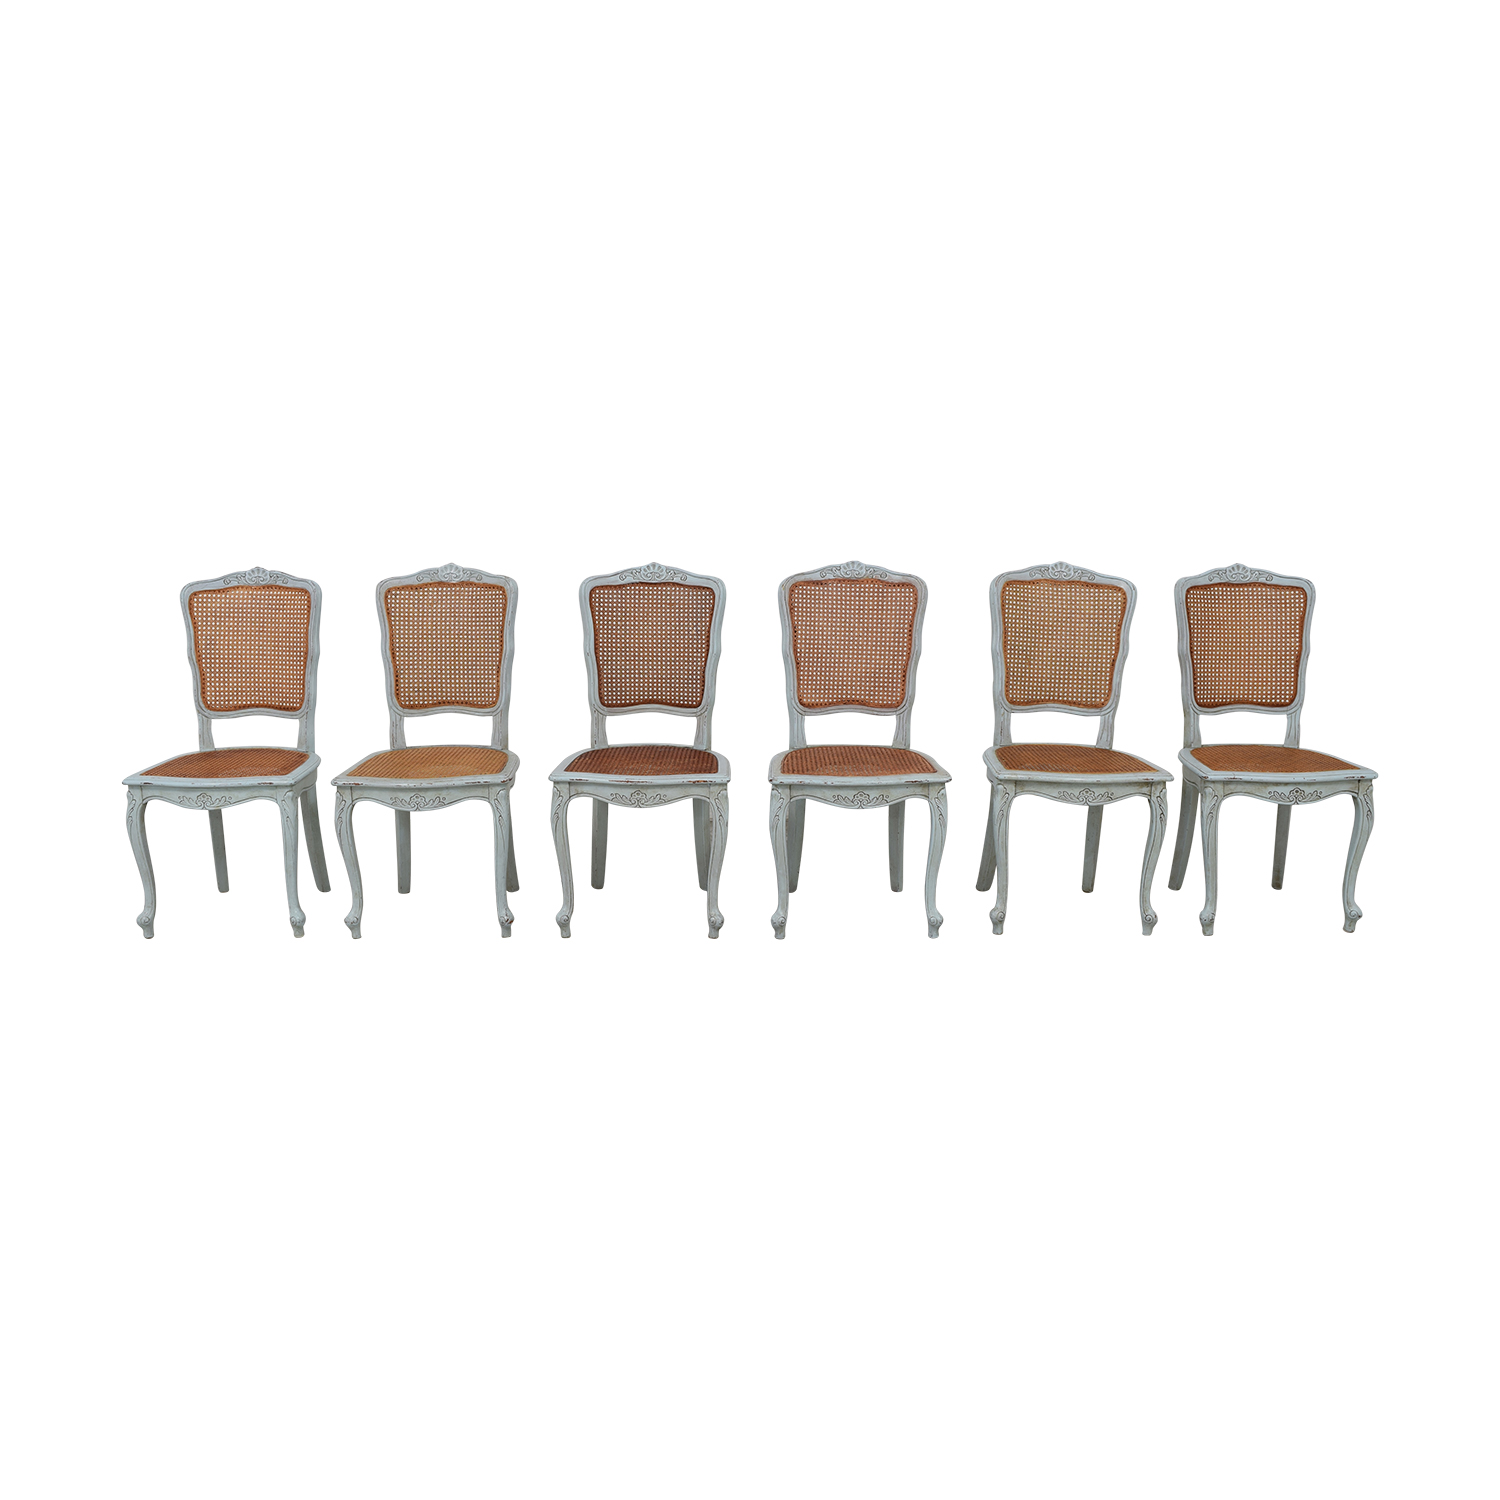 shop ABC Carpet & Home French Wicker Chairs ABC Carpet & Home Dining Chairs